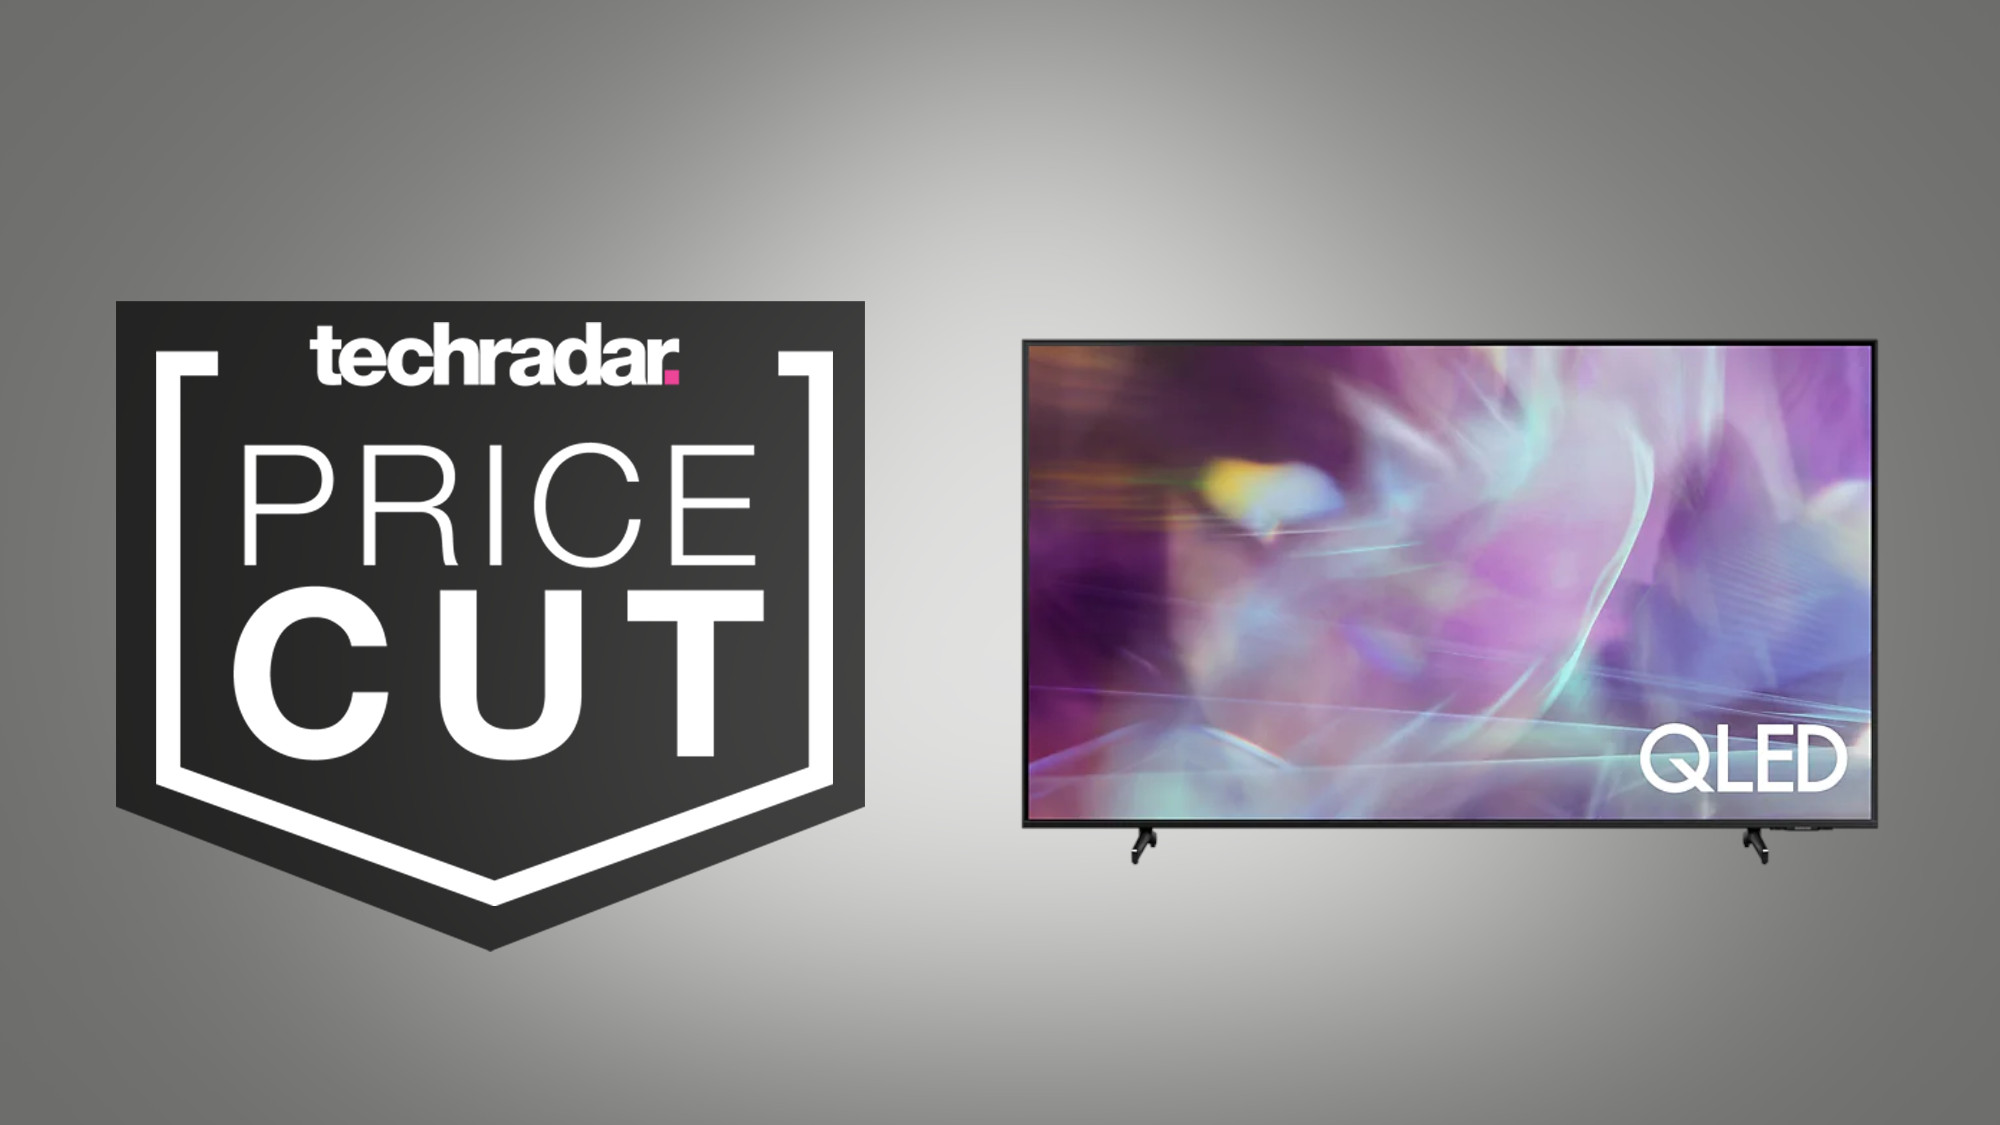 Best Buy's OLED TV deals offer up to $400 off 2021 Samsung displays this weekend thumbnail